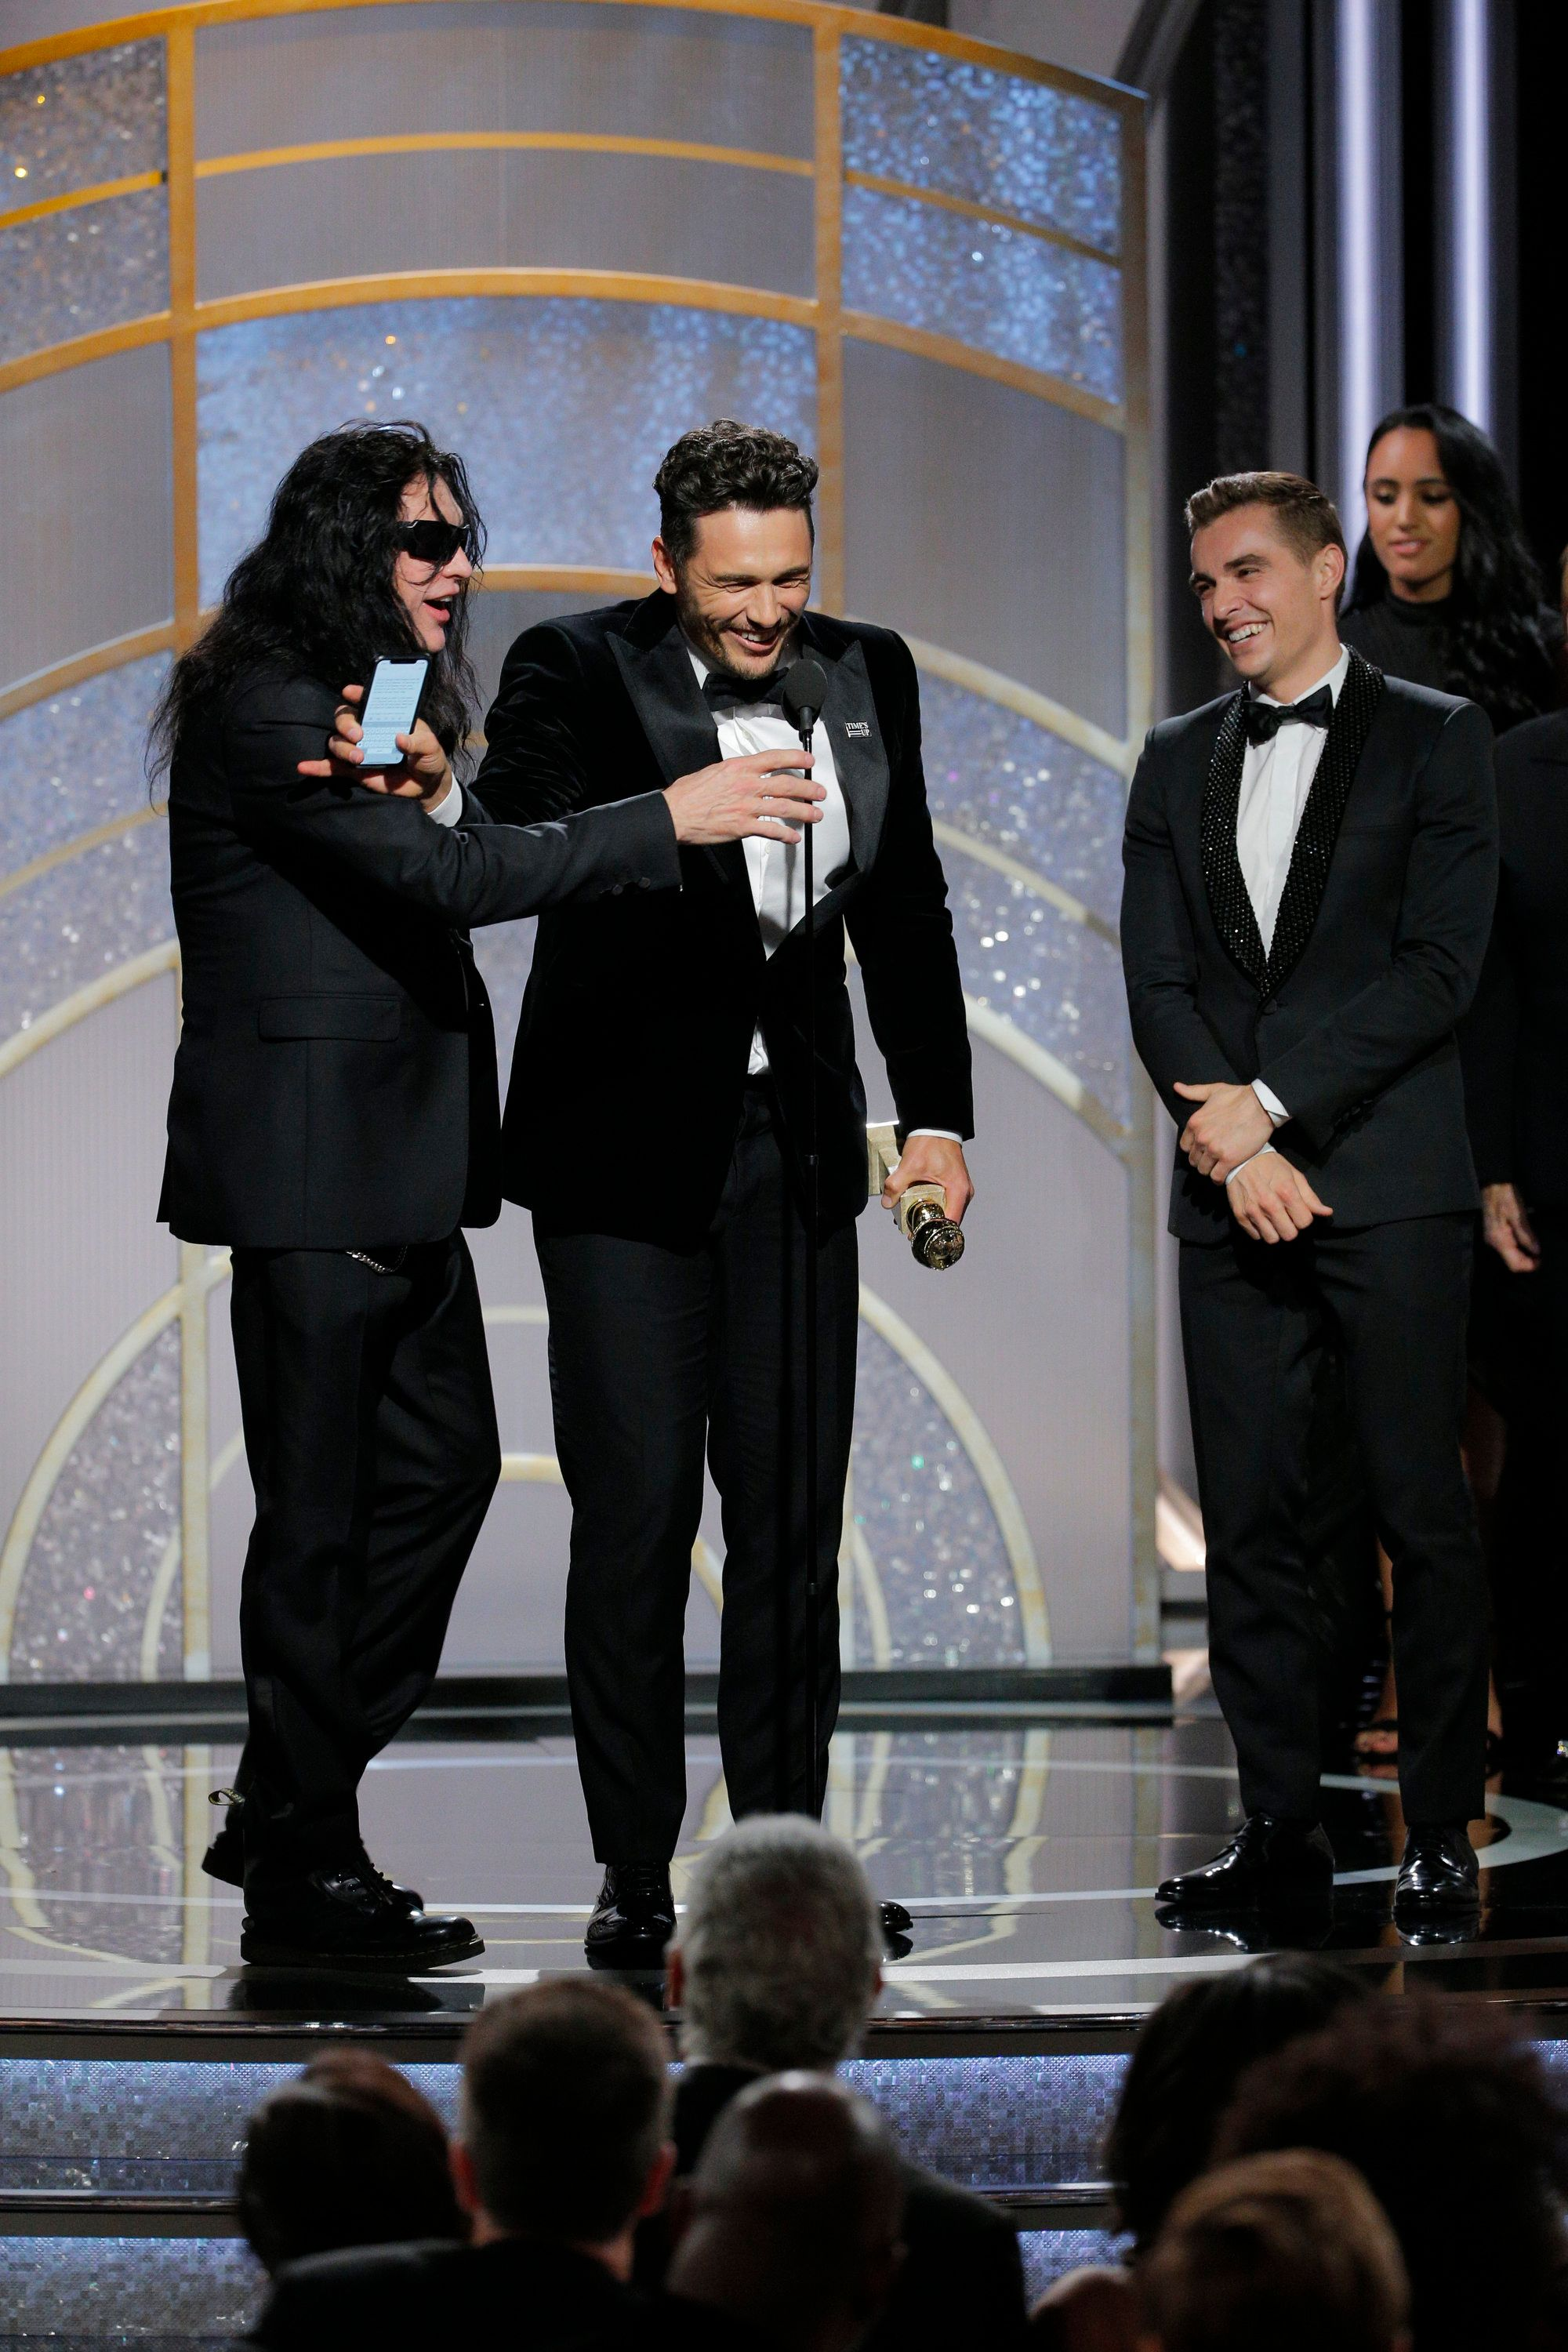 'The Room' Star Tommy Wiseau Shares The Golden Globes Speech That Never